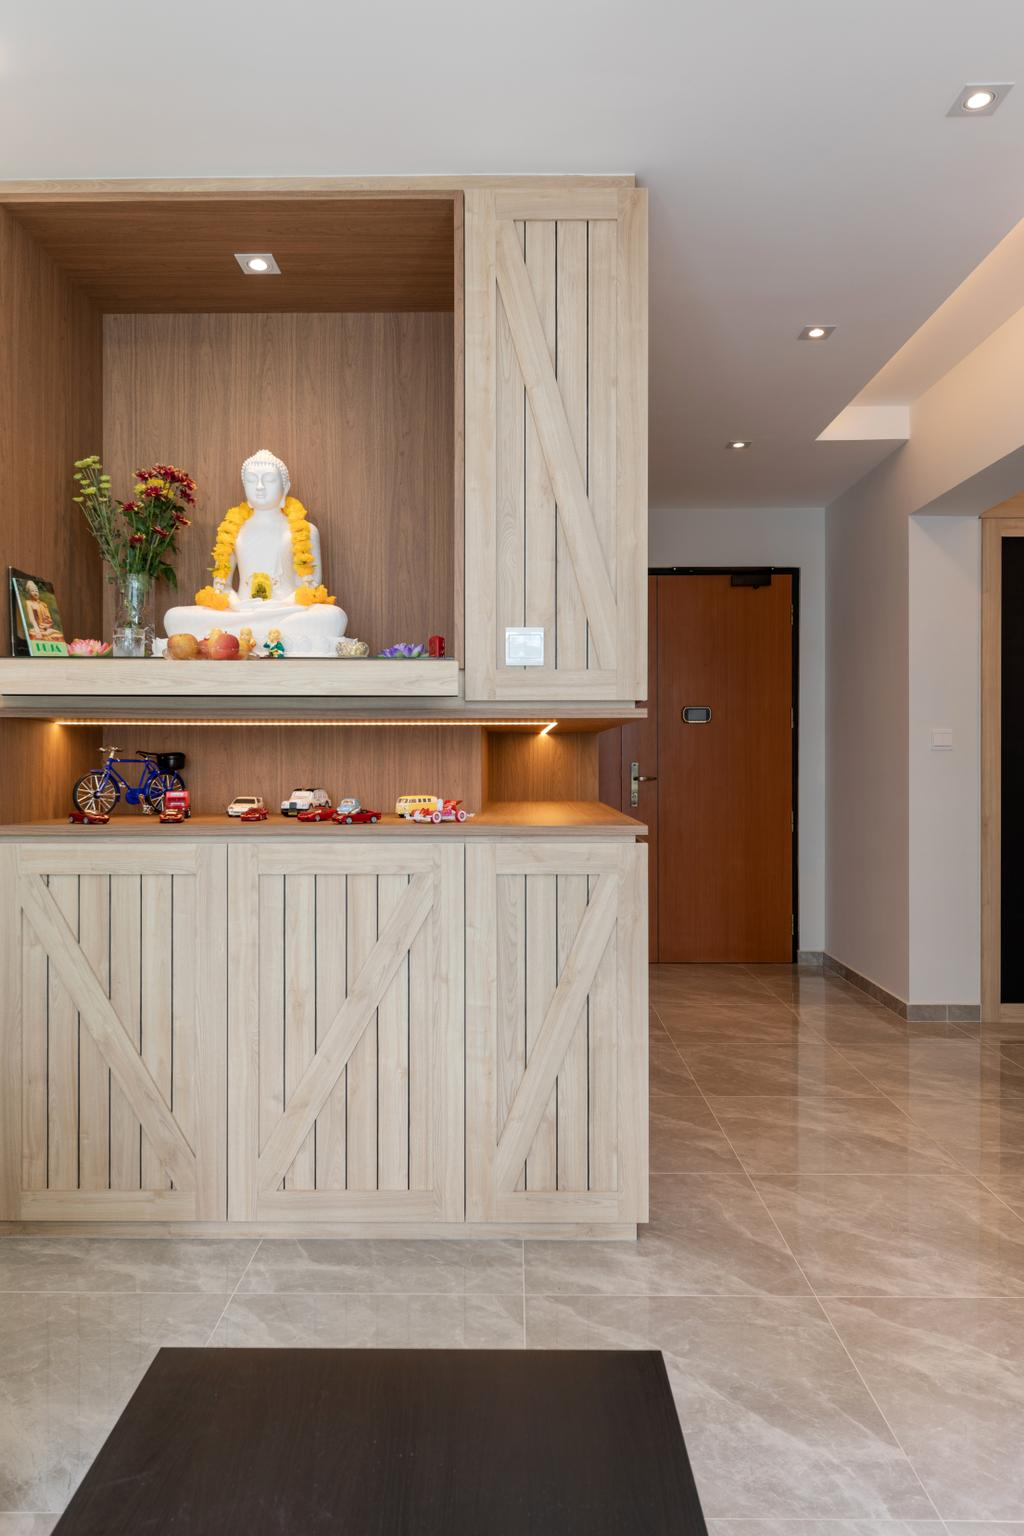 Transitional, HDB, Sembawang Crescent, Interior Designer, Form & Space, Eclectic